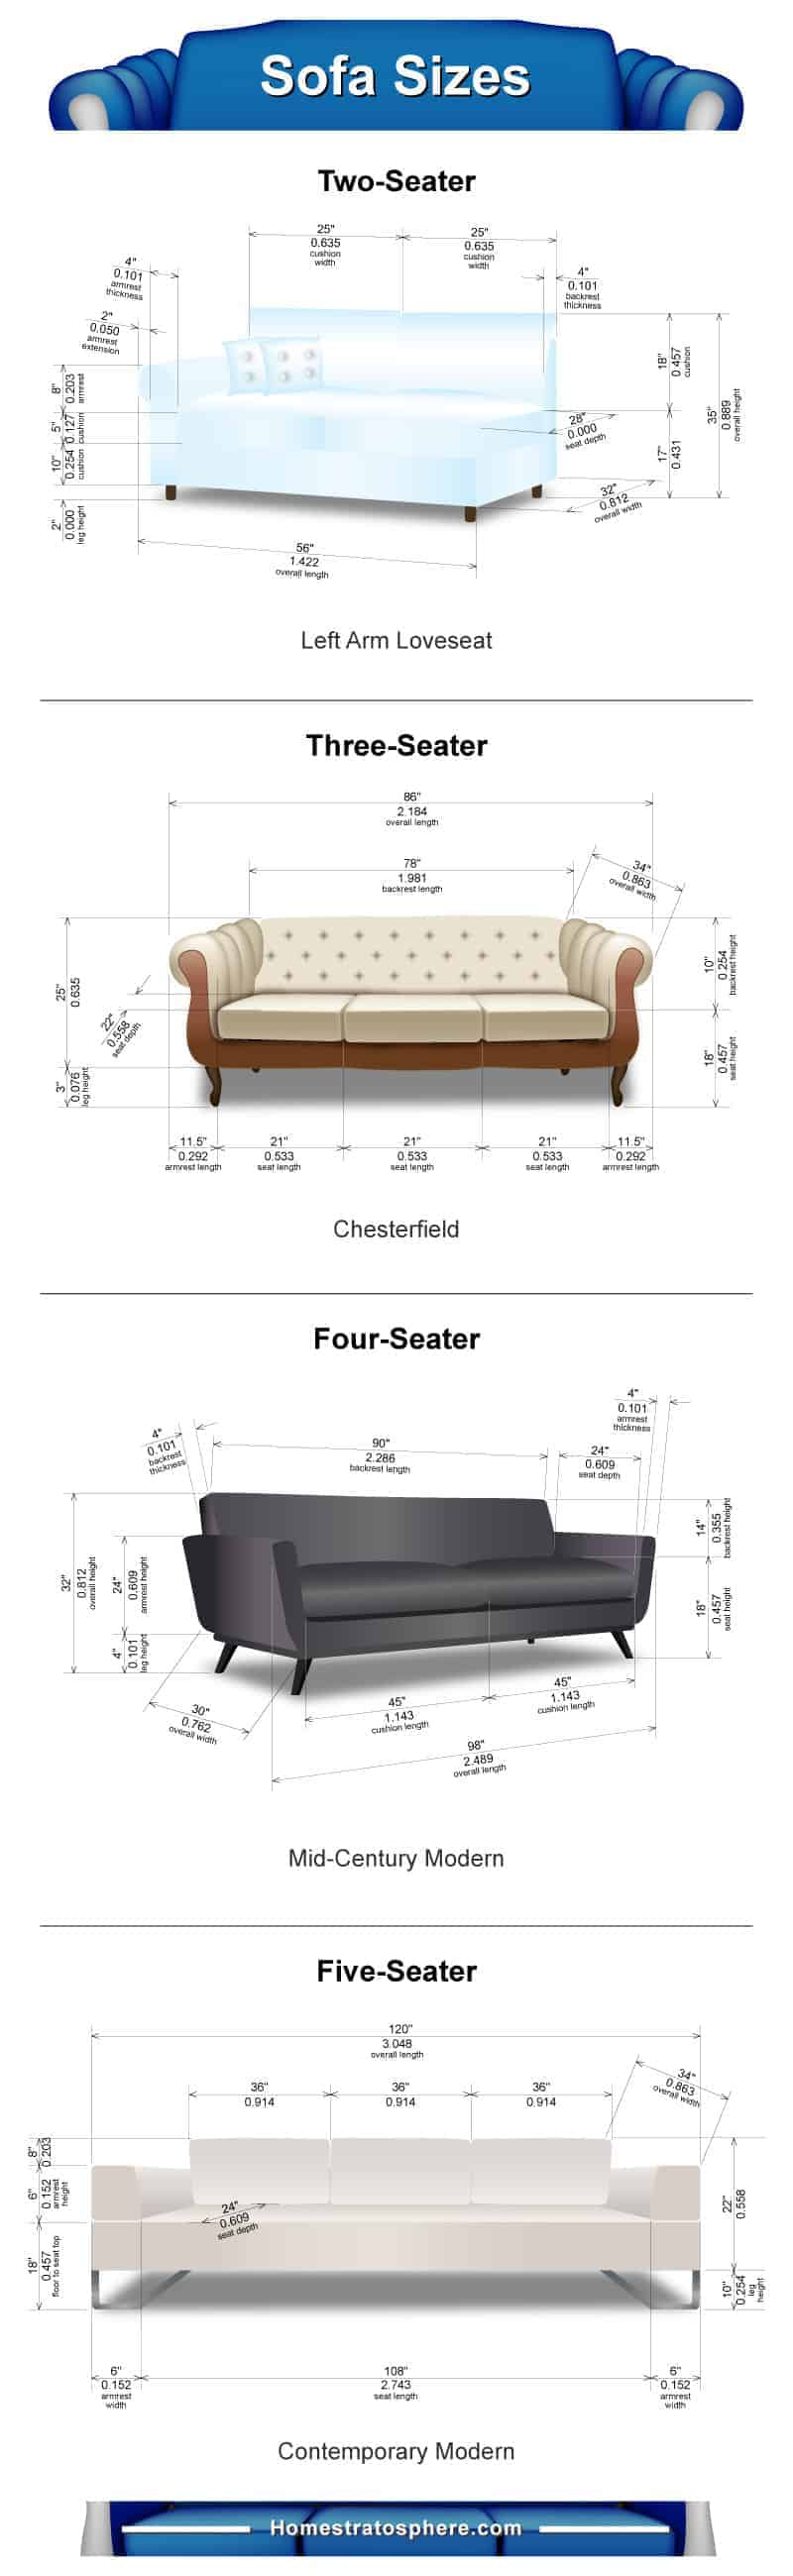 Diagrams Showing The Proper Couch Dimensions According To Number Of People It Seats